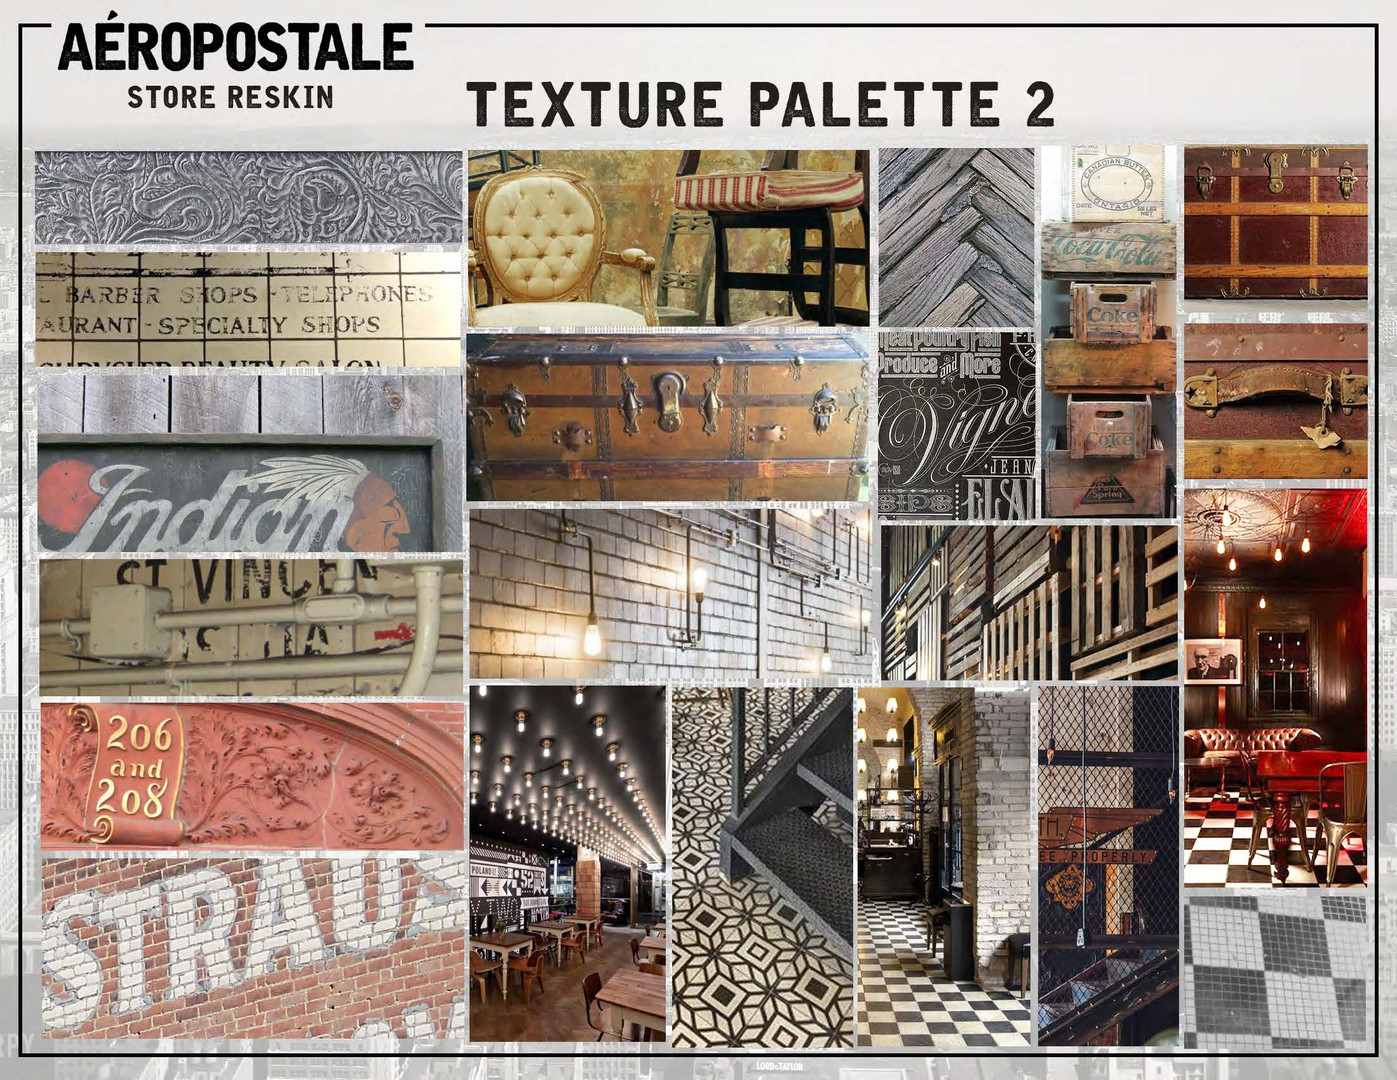 Merchandised visual inspiration board for various in-store floor and wall textures